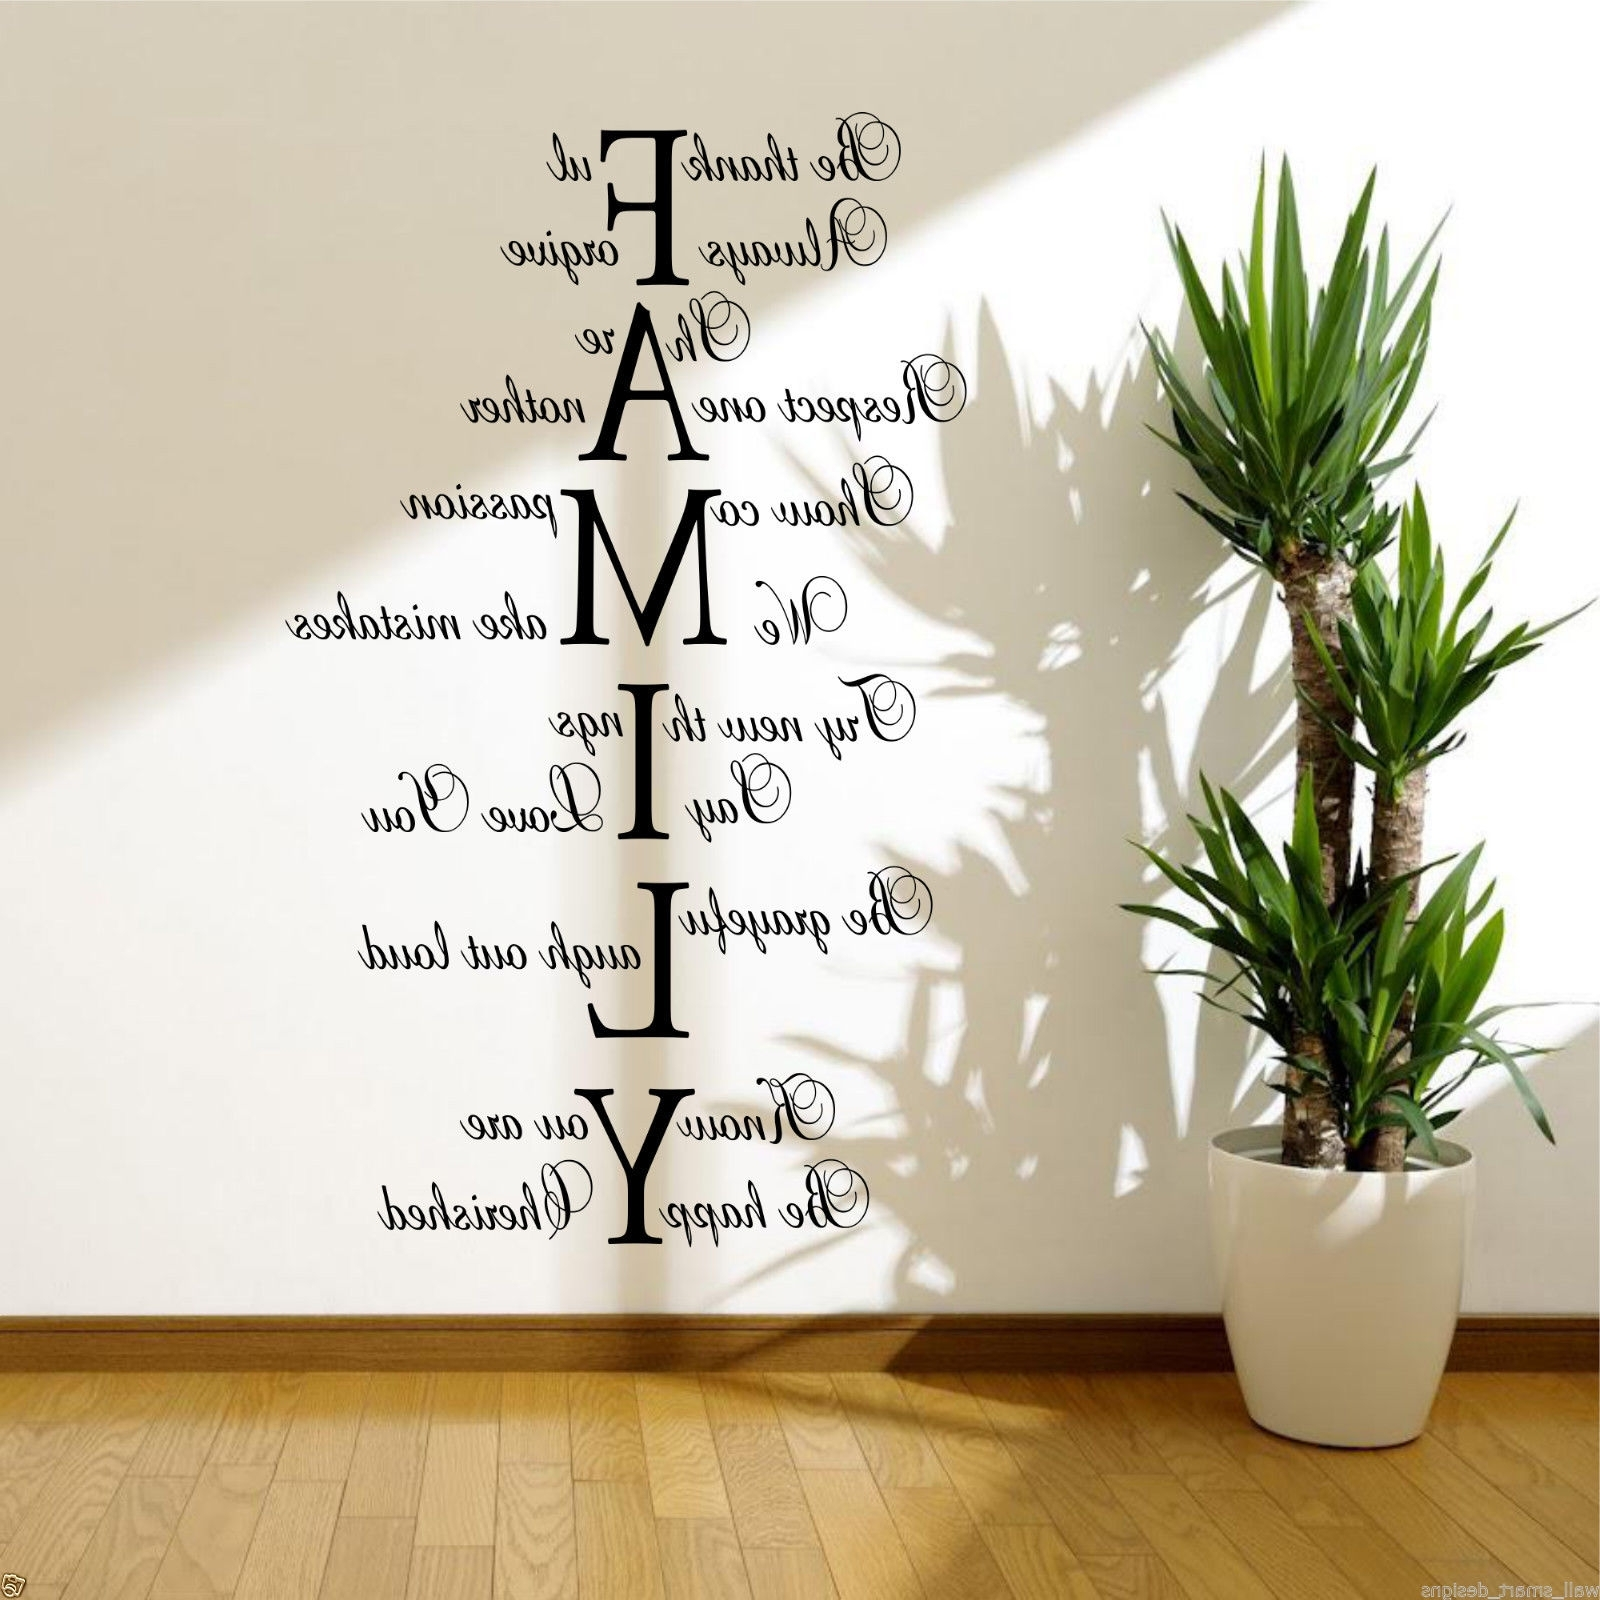 Wall Art Quotes With Latest Family Love Life Wall Art Sticker Quote Room Decal Mural Transfer (View 3 of 15)